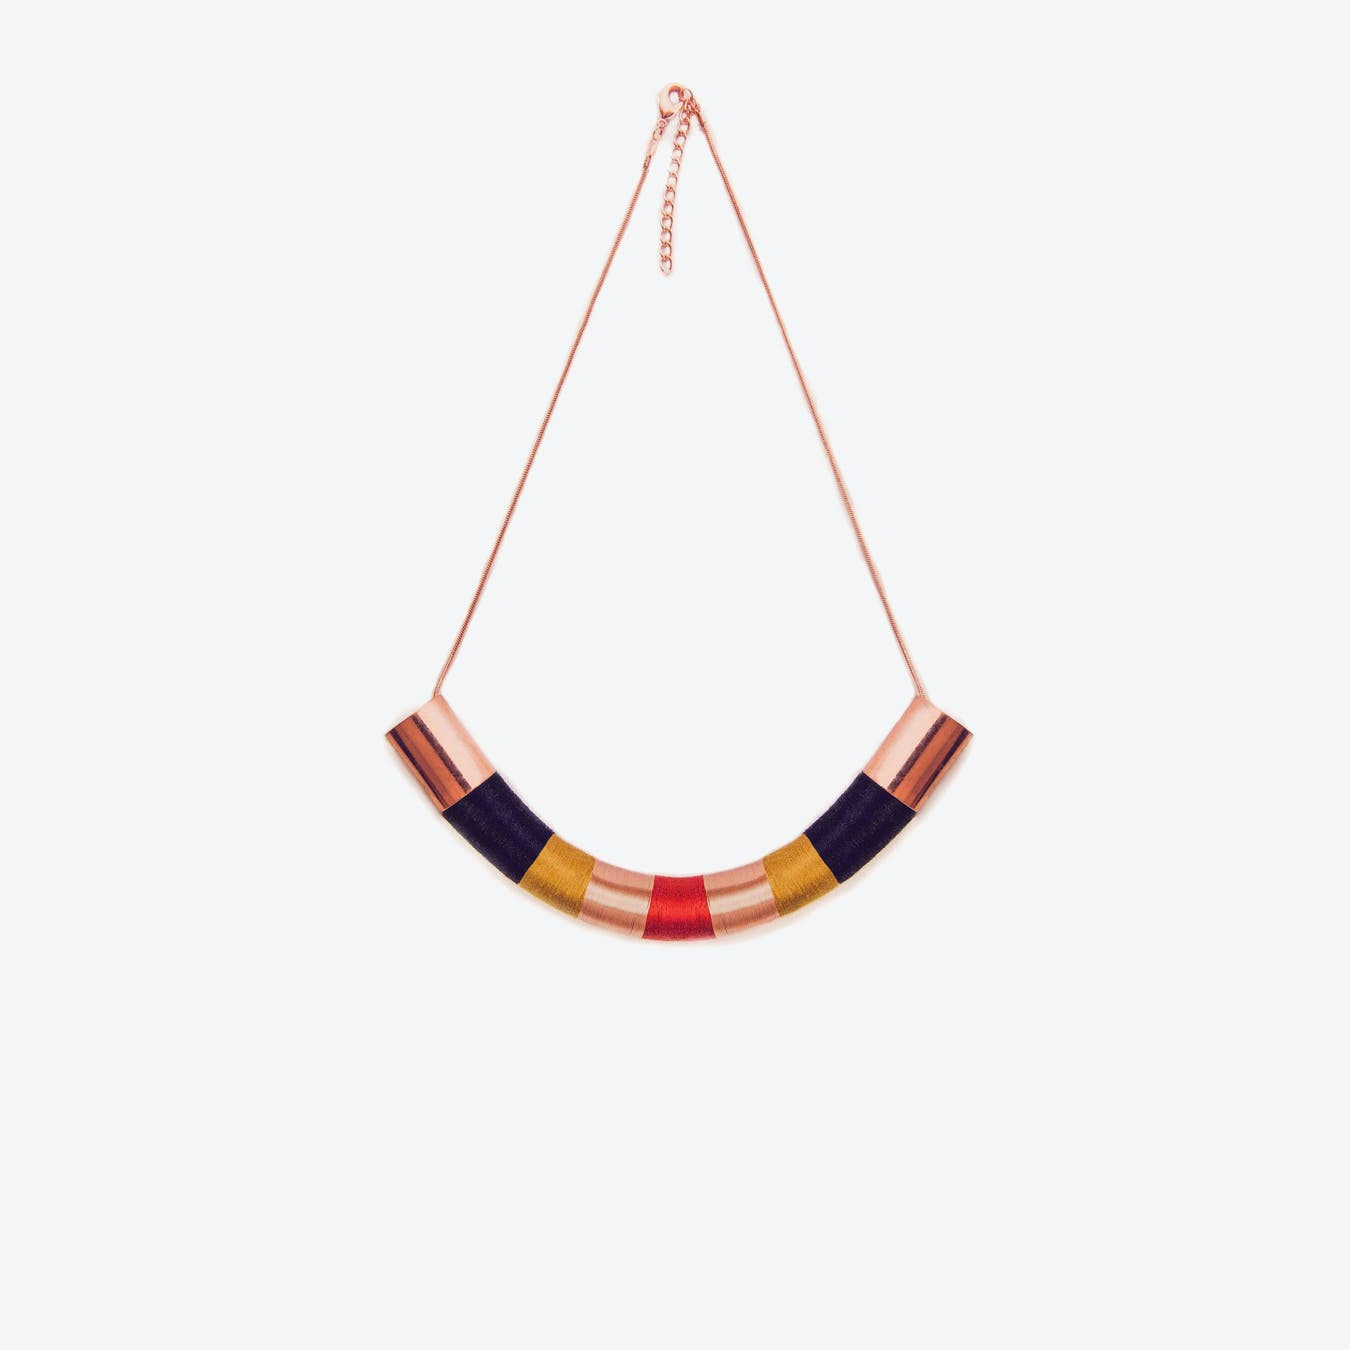 TOOBA.L Necklace N°17